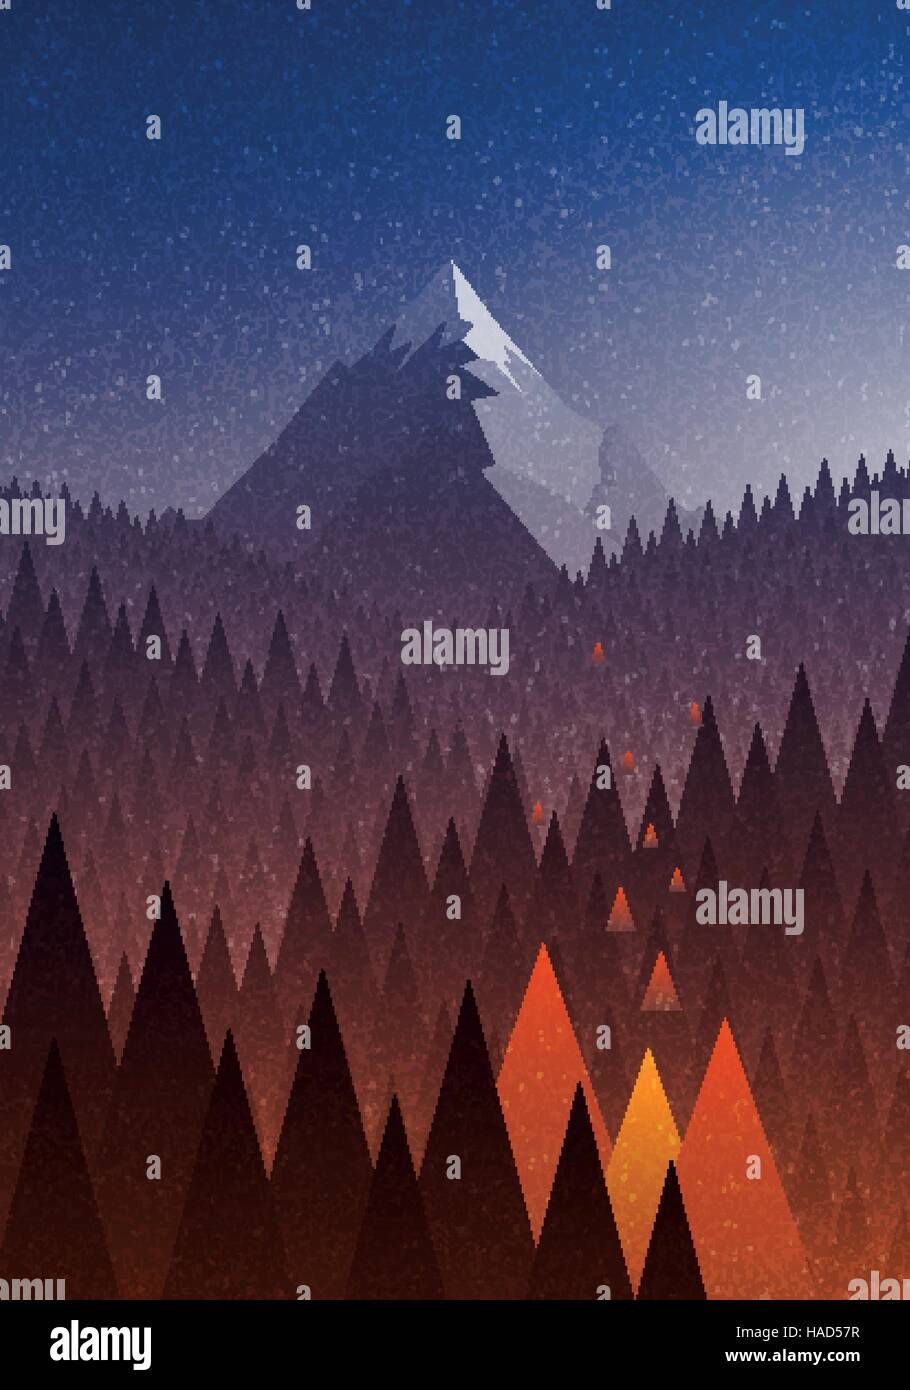 Abstract Nature Landscape Mountain And Forest Fire